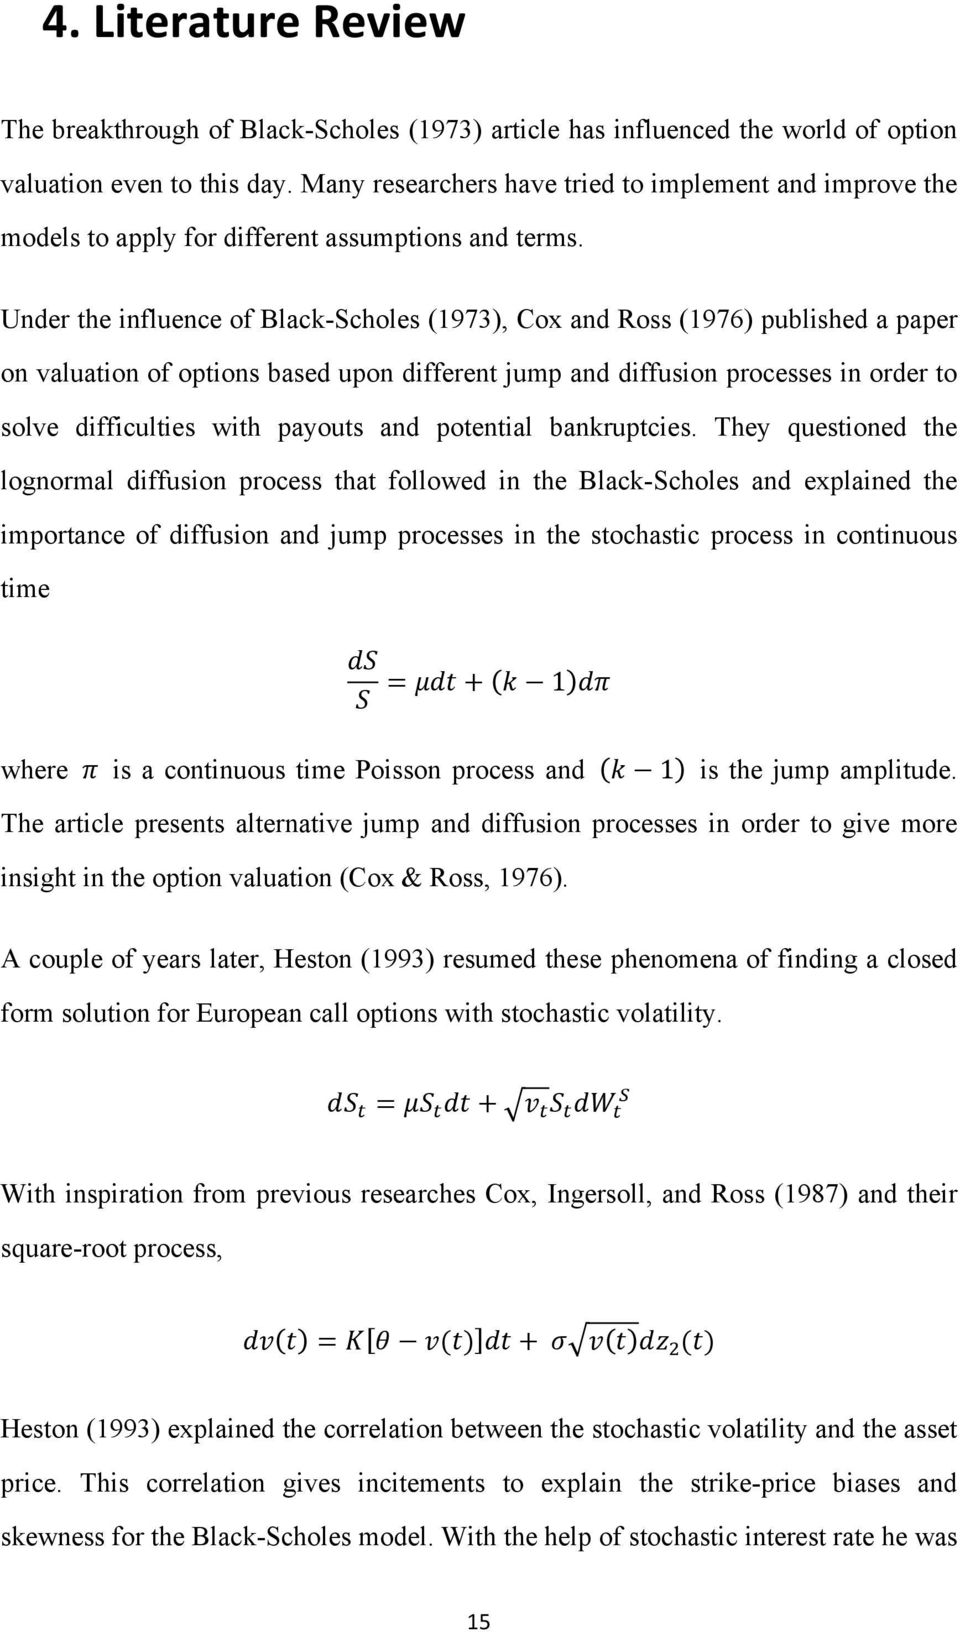 Under the influence of Black-Scholes (1973), Cox and Ross (1976) published a paper on valuation of options based upon different jump and diffusion processes in order to solve difficulties with